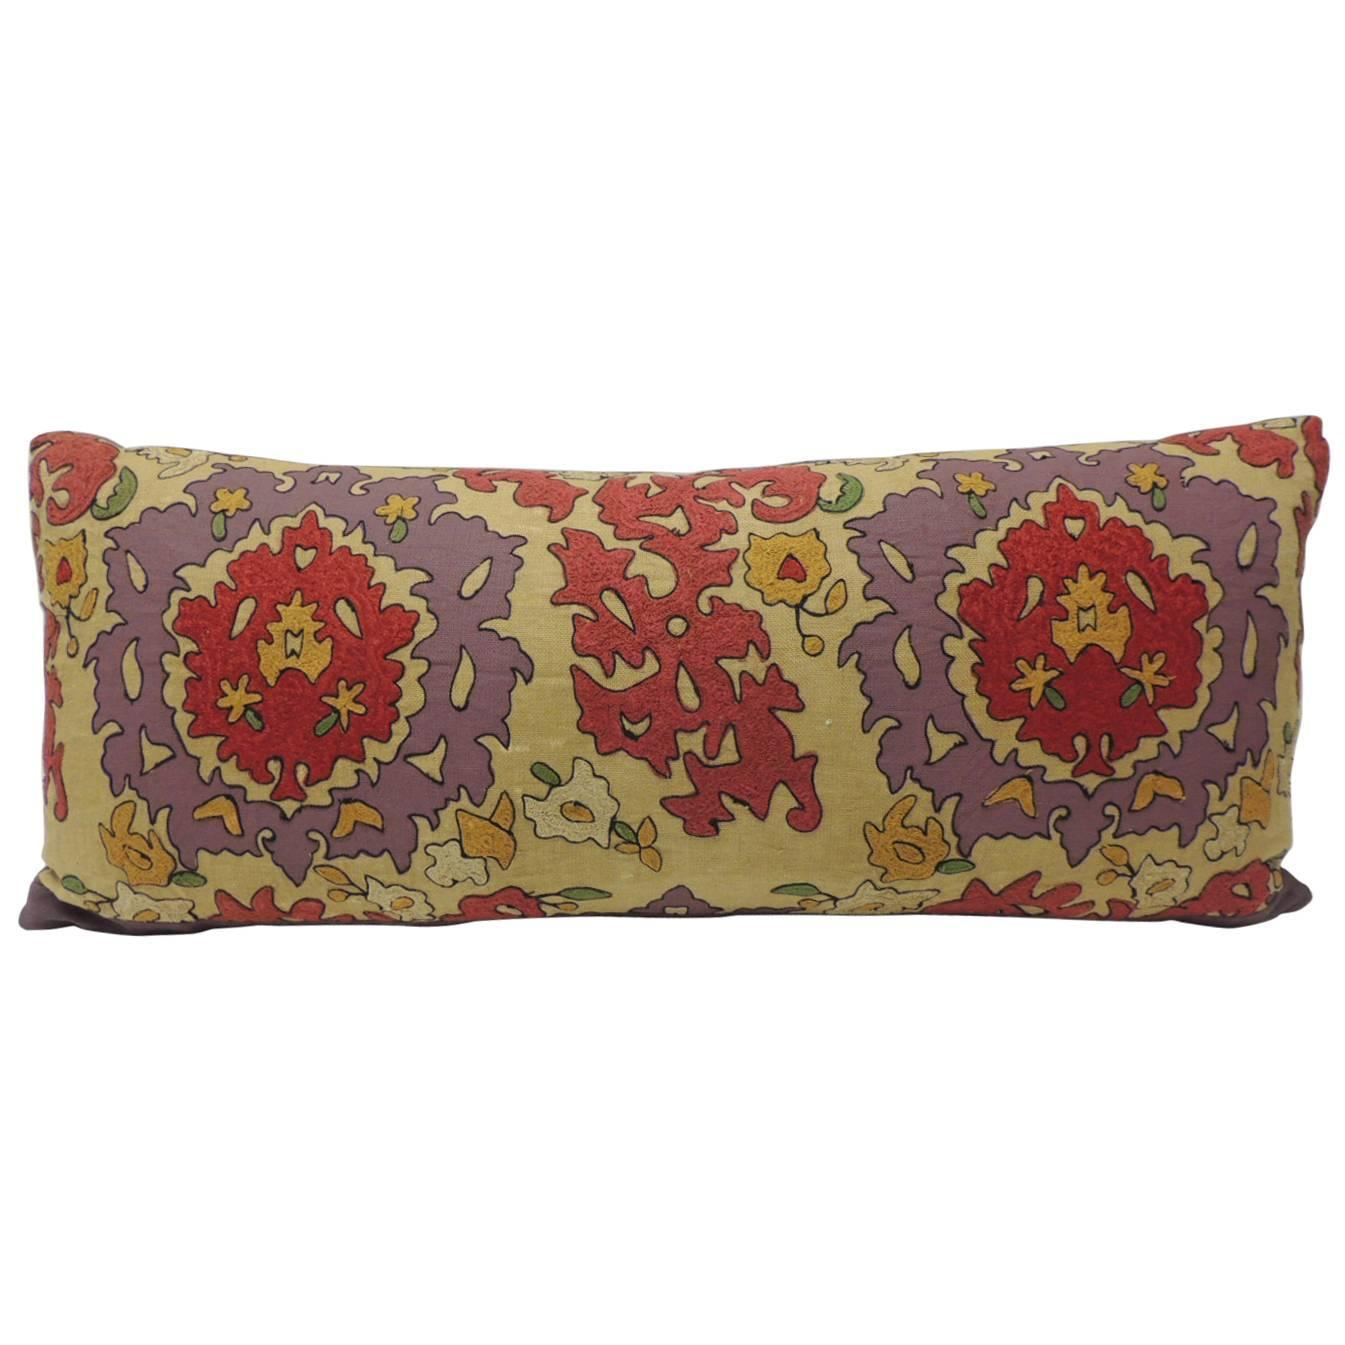 Decorative Pillows Long : 19th Century Long Uzbek Vintage Suzani Large Bolster Decorative Pillow For Sale at 1stdibs